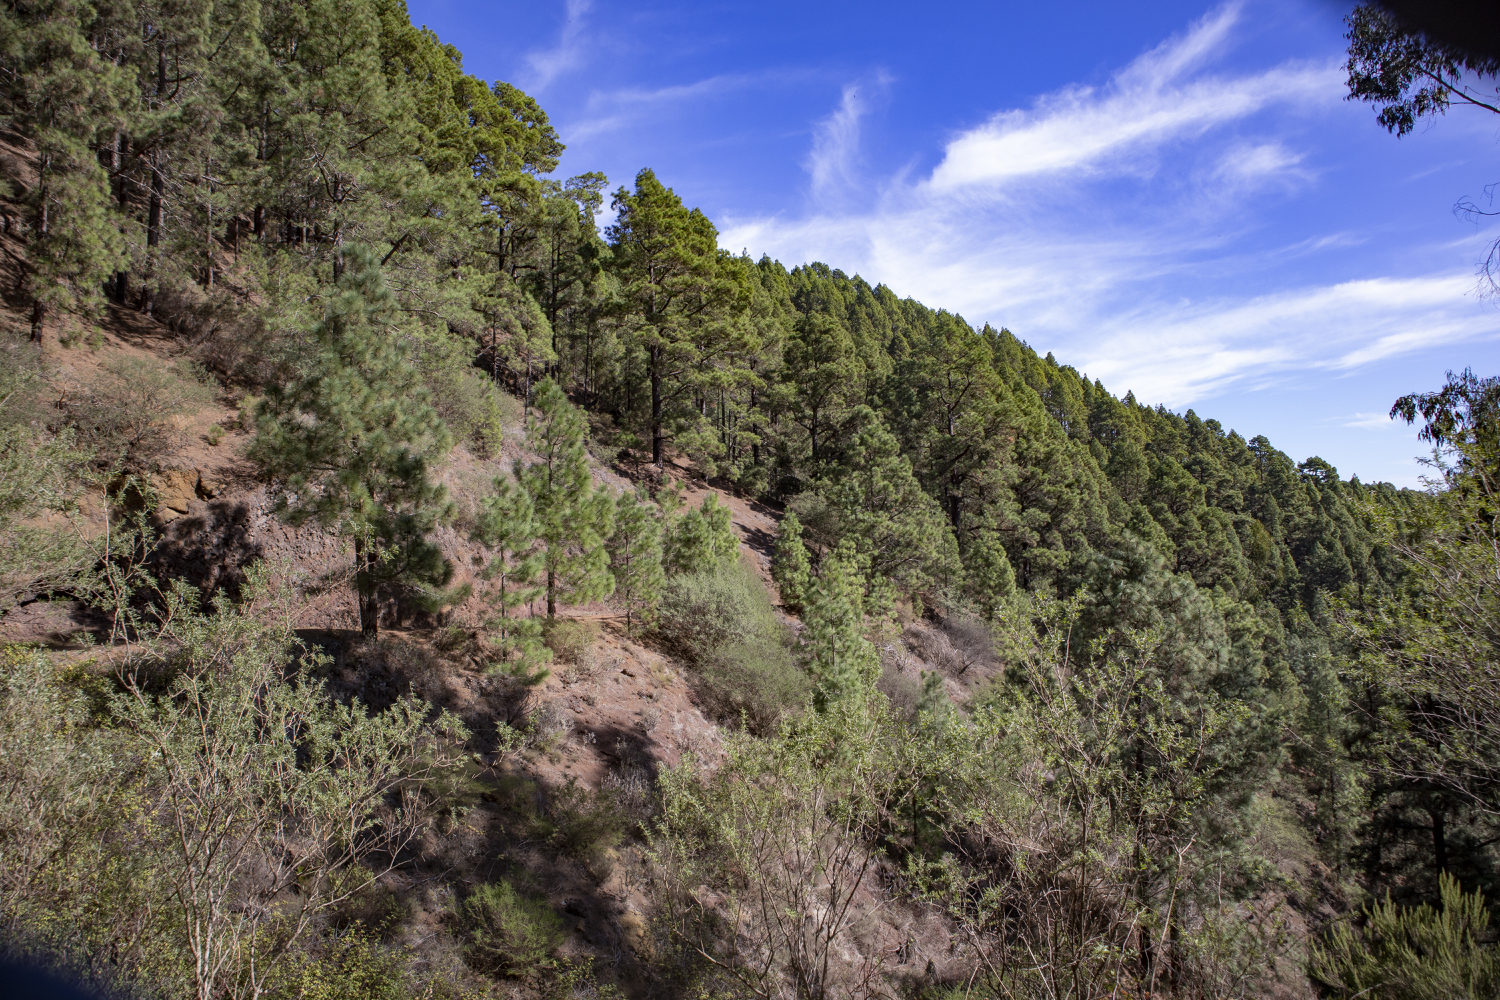 Hiking trail on the slope through the Esperanza Forest - Pista Huelgues on the las Raíces hike